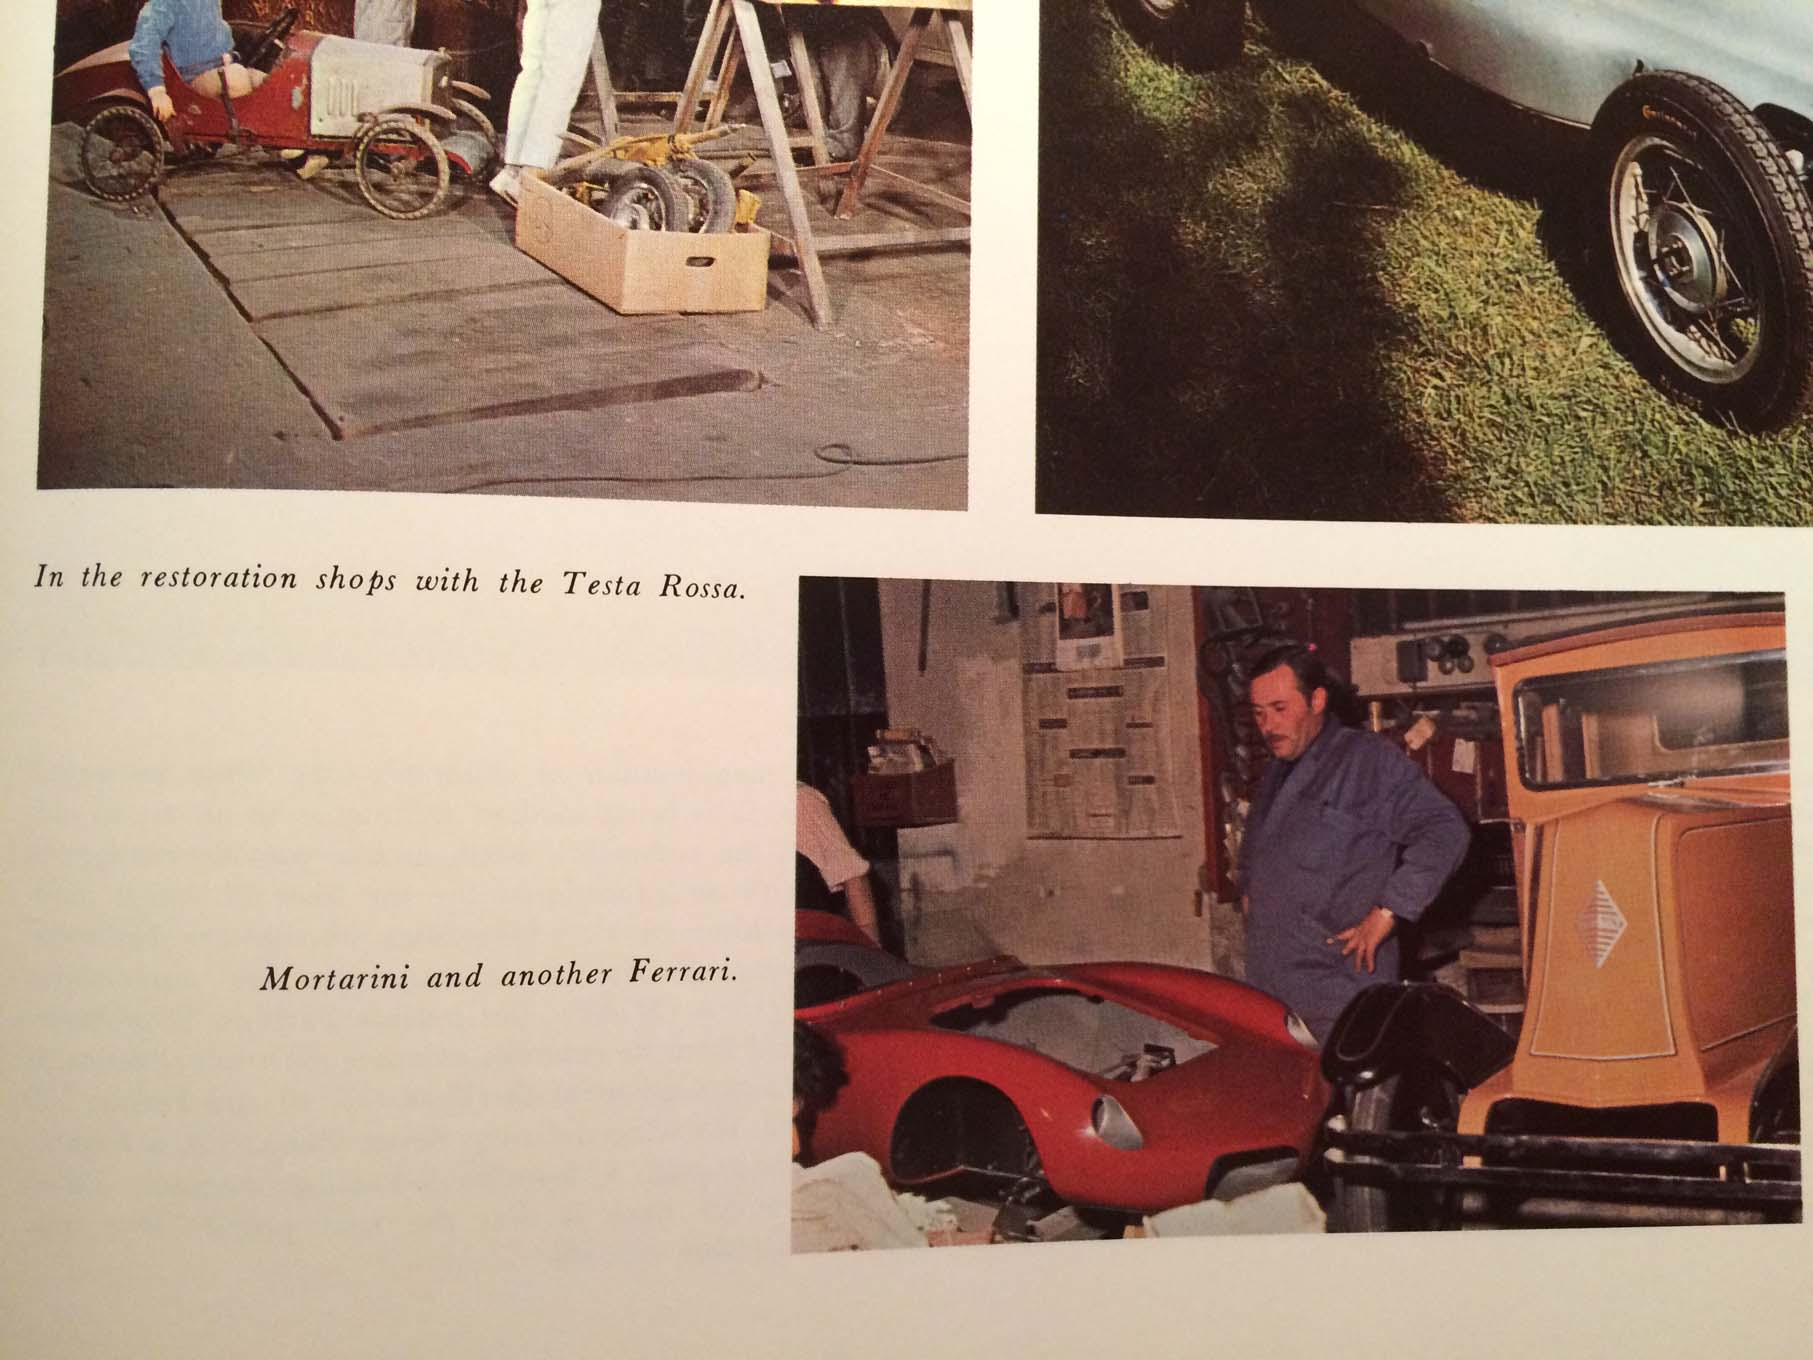 In a 1968 story about Mortorini in Automobile Quarterly, he talks about his love for scaled-down supercars.